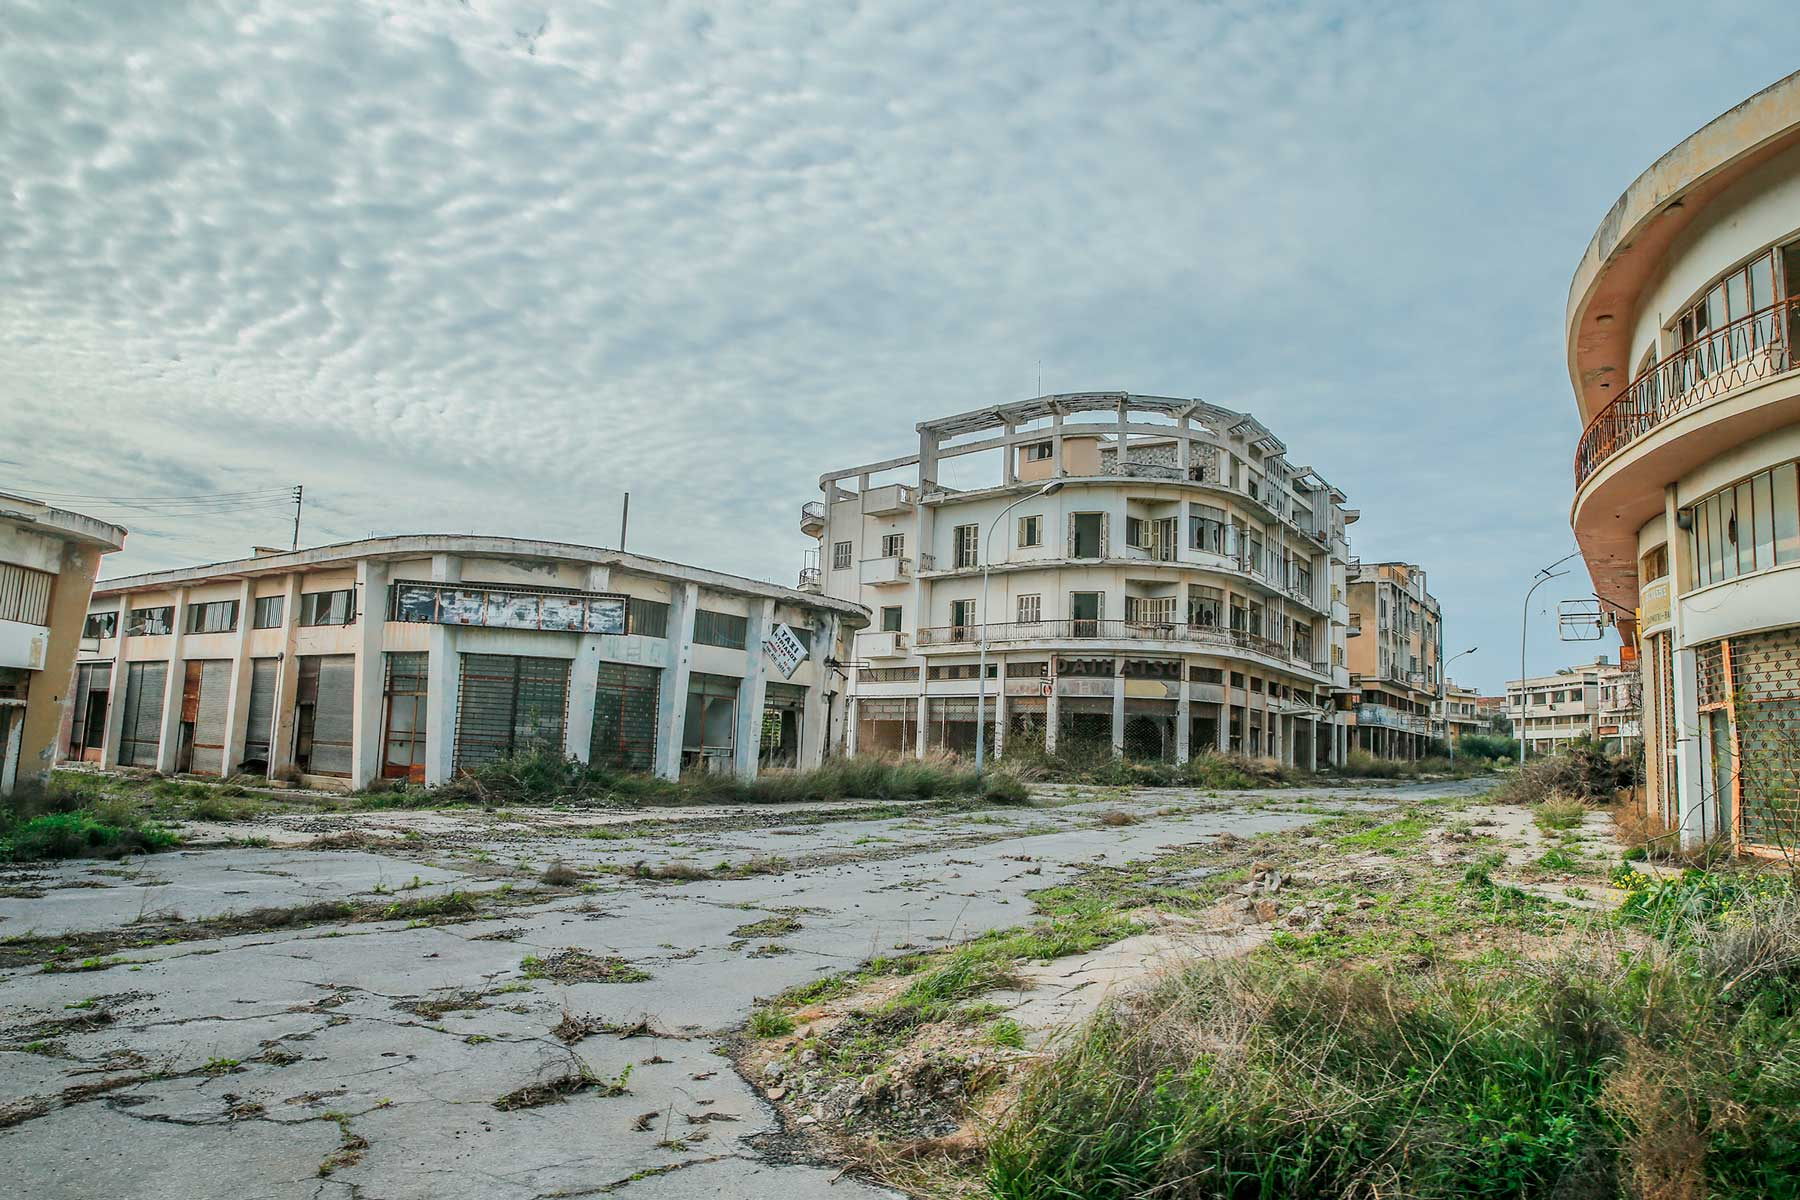 A view of abandoned buildings in Closed Maras (or Varosha in Greek) on February 15, 2020.